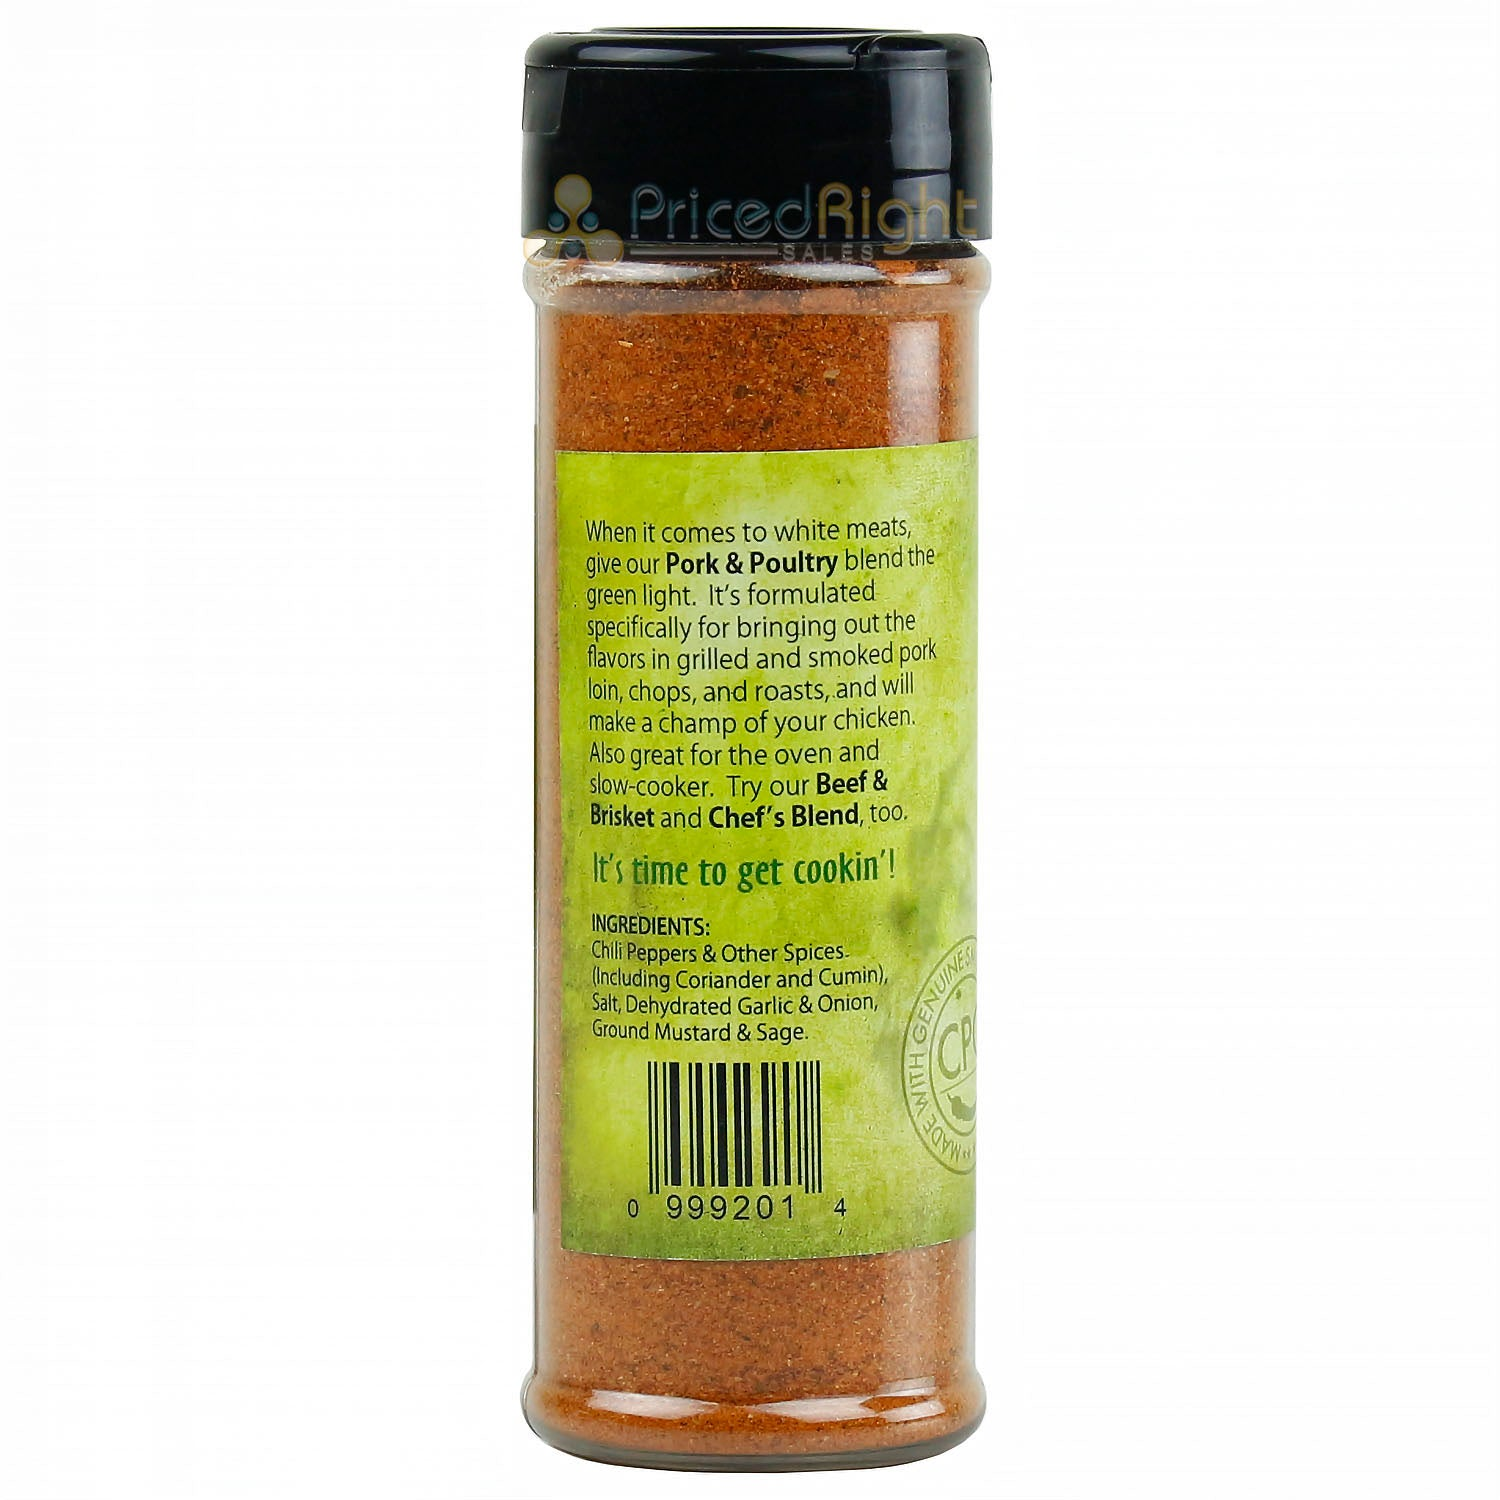 Pepper Company Pork & Poultry Seasoning Made with Genuine Smoked Cowhorn Peppers